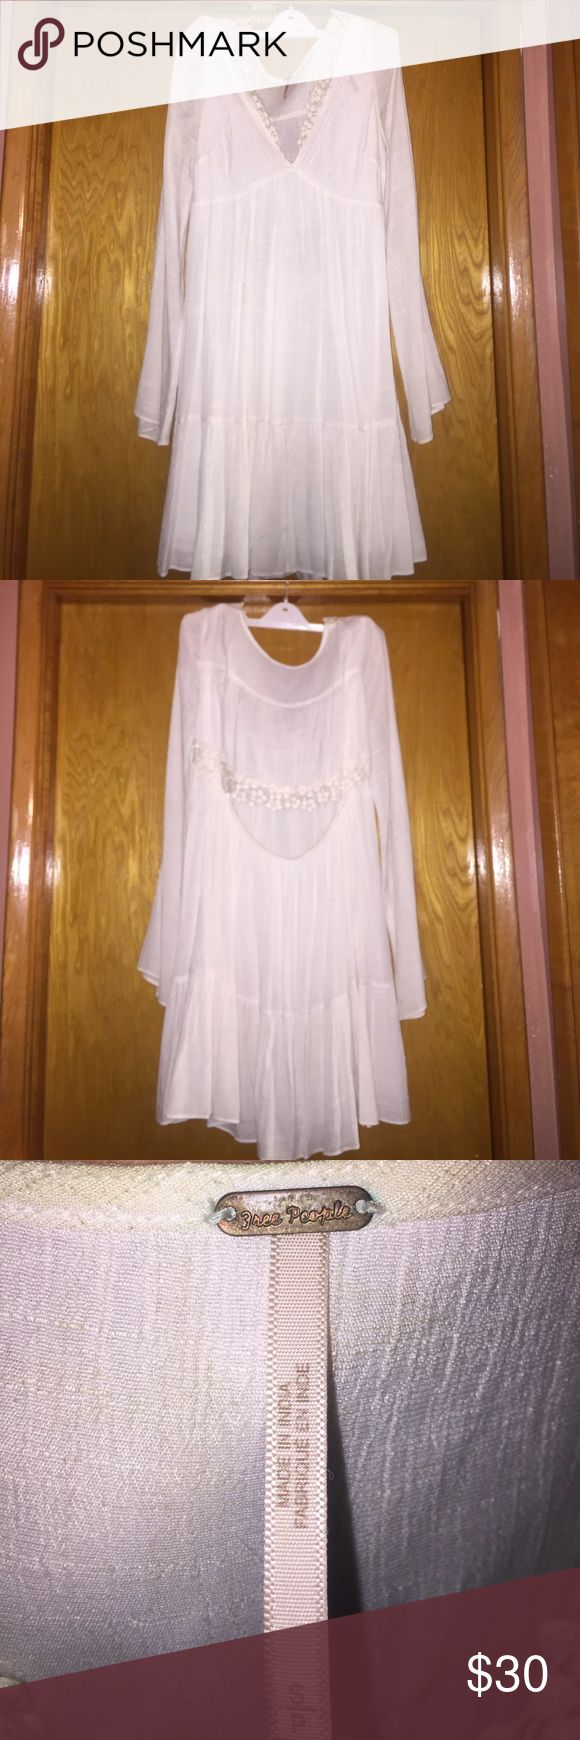 """Free People white festival dress Free People white dress. Slight bell sleeves. Open back slit. Lace trim. Size S Length shoulder to bottom 33.5"""" EUC ONLY WORN ONCE. Free People Dresses Midi"""